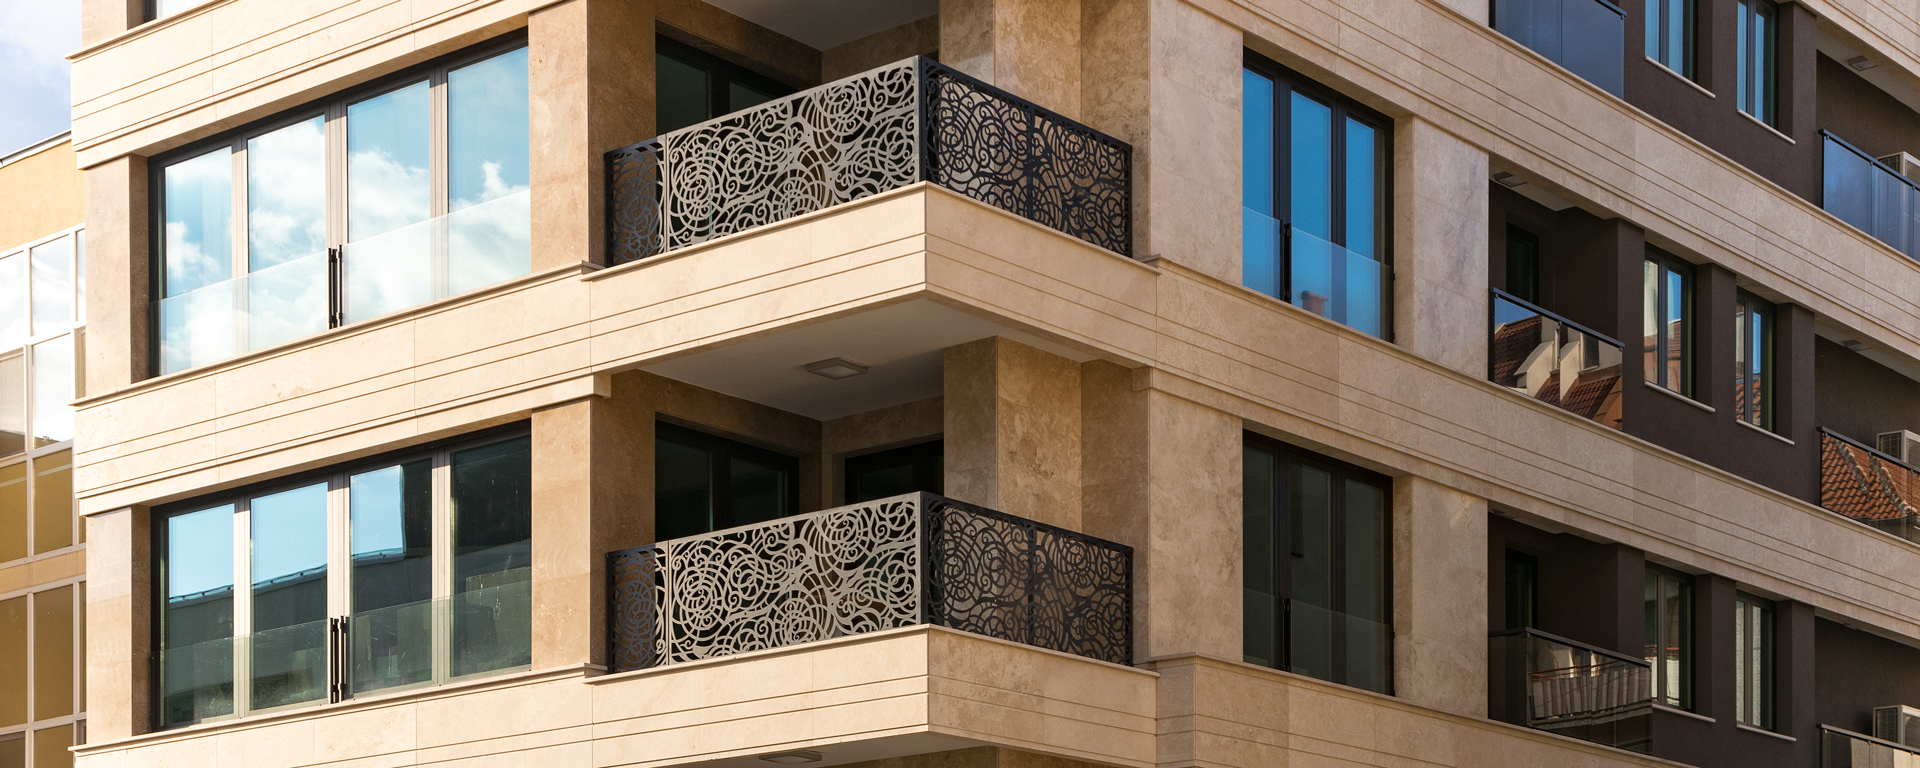 residential building ventilated façade with travertine | bulkam decor